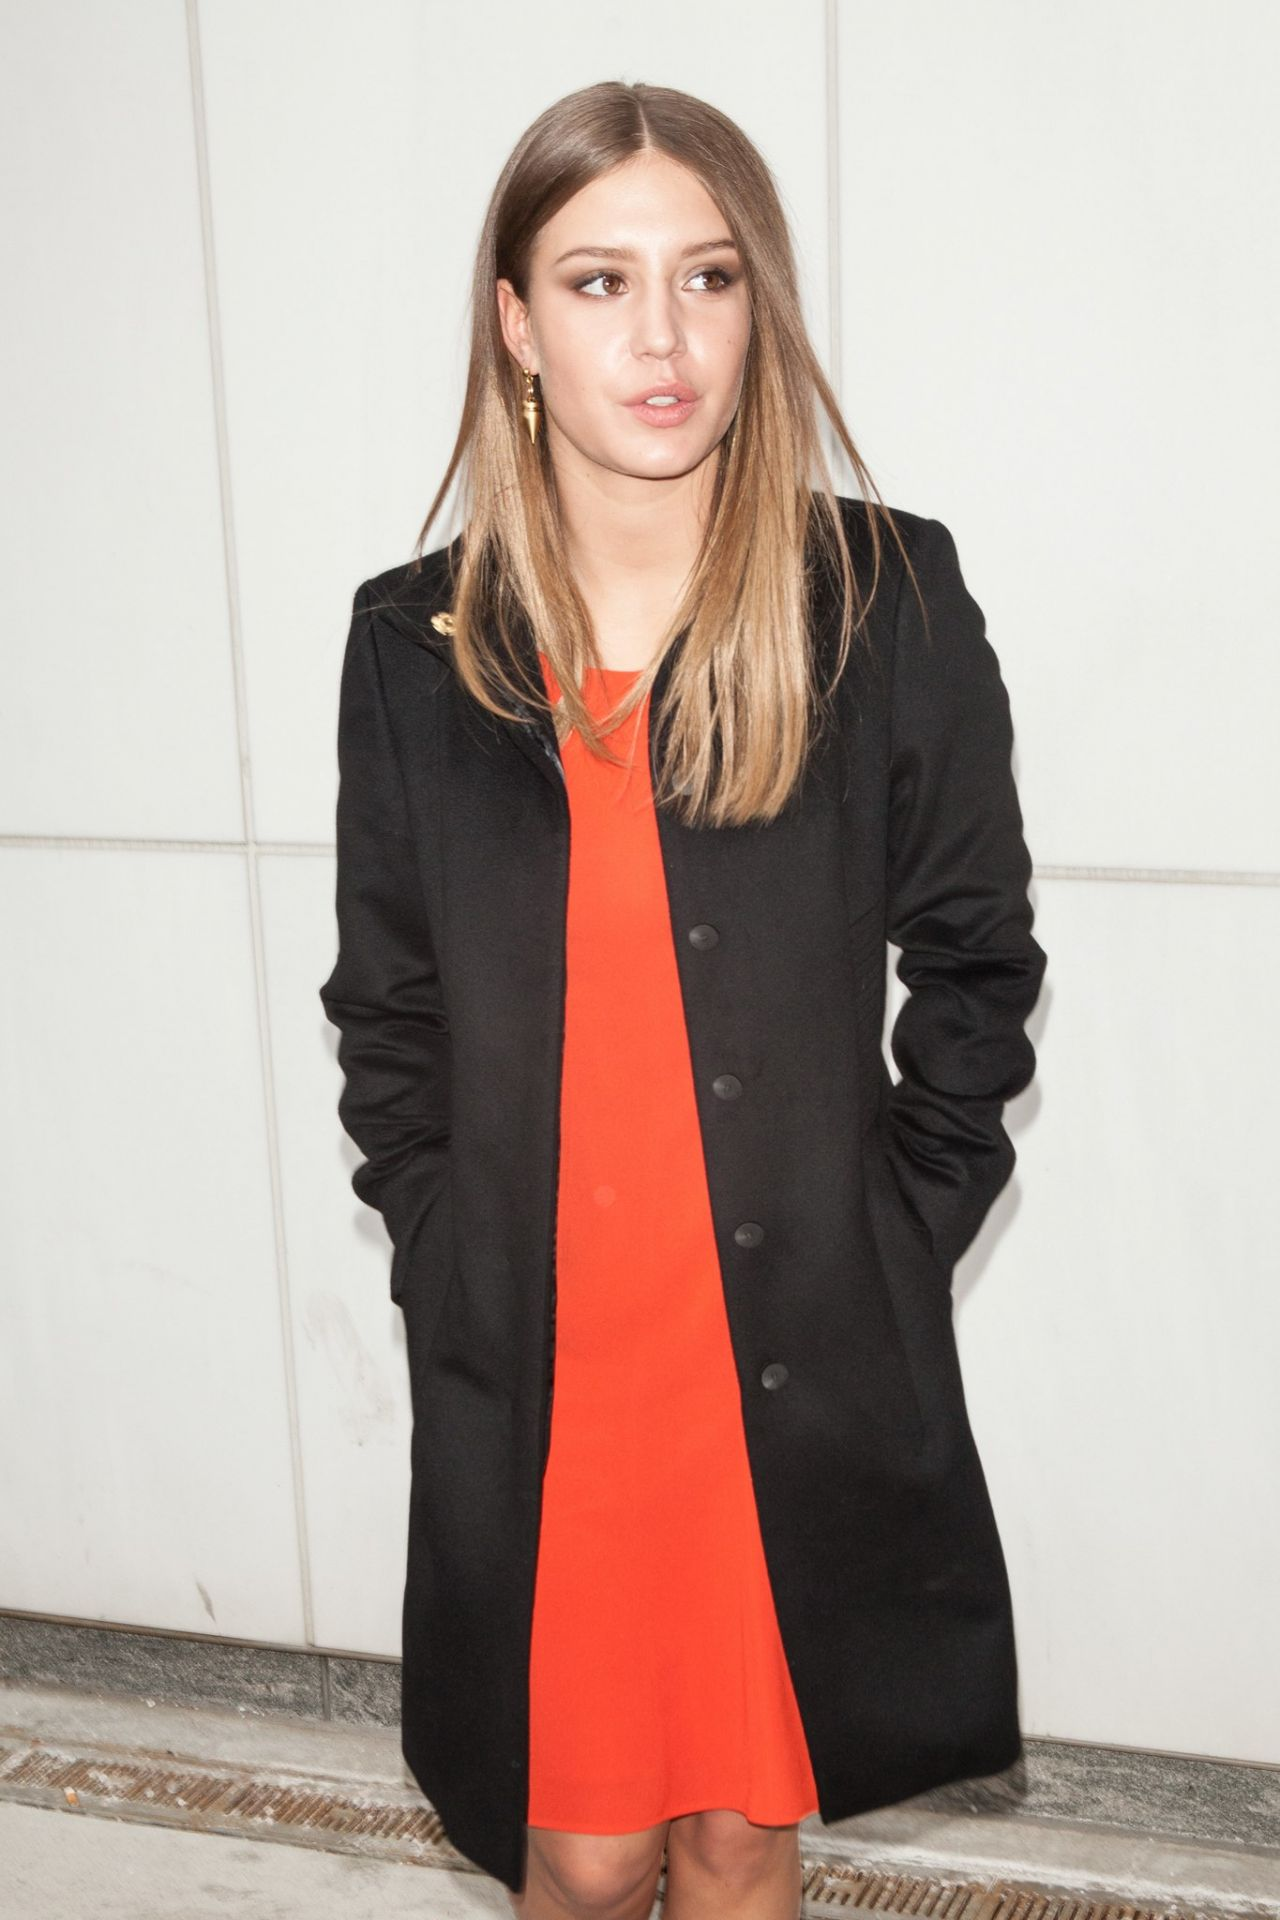 Adèle Exarchopoulos at New York Fashion Week, February 2014